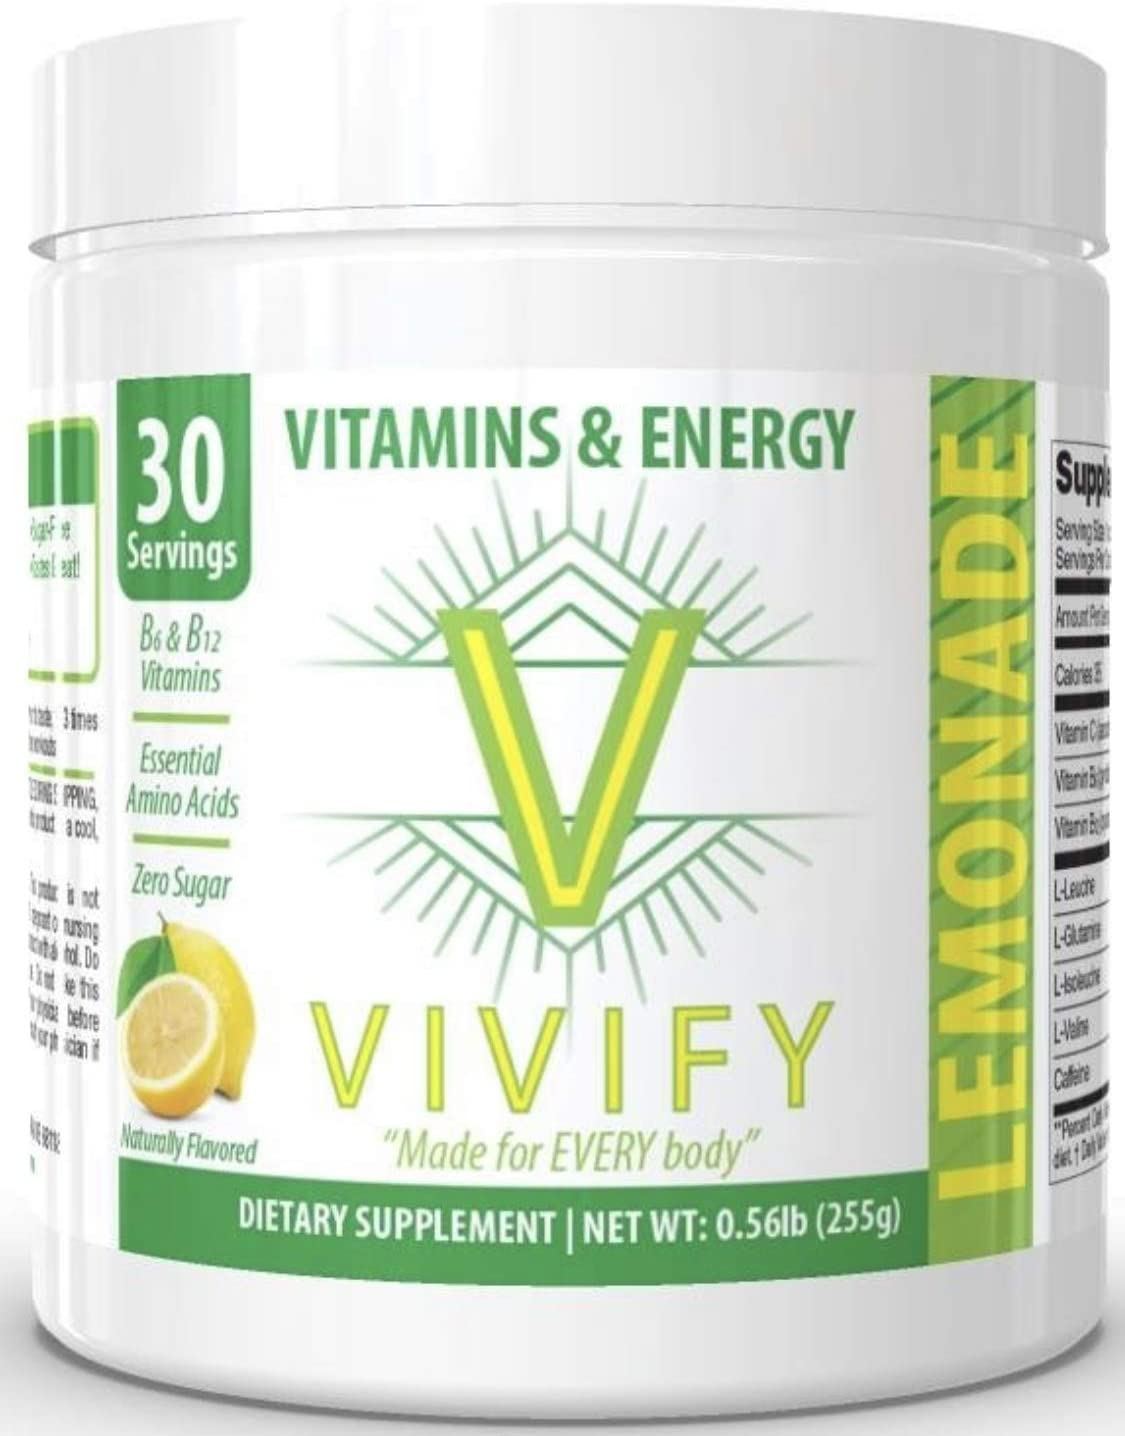 Vivify All-Day Energy Vitamin and Amino Powder, Top-Rated Preworkout Energizer for Women and Men, 5 g BCAA s, L-Glutamine. Natural Lemon Flavor. Zero Sugar. 30 Servings.